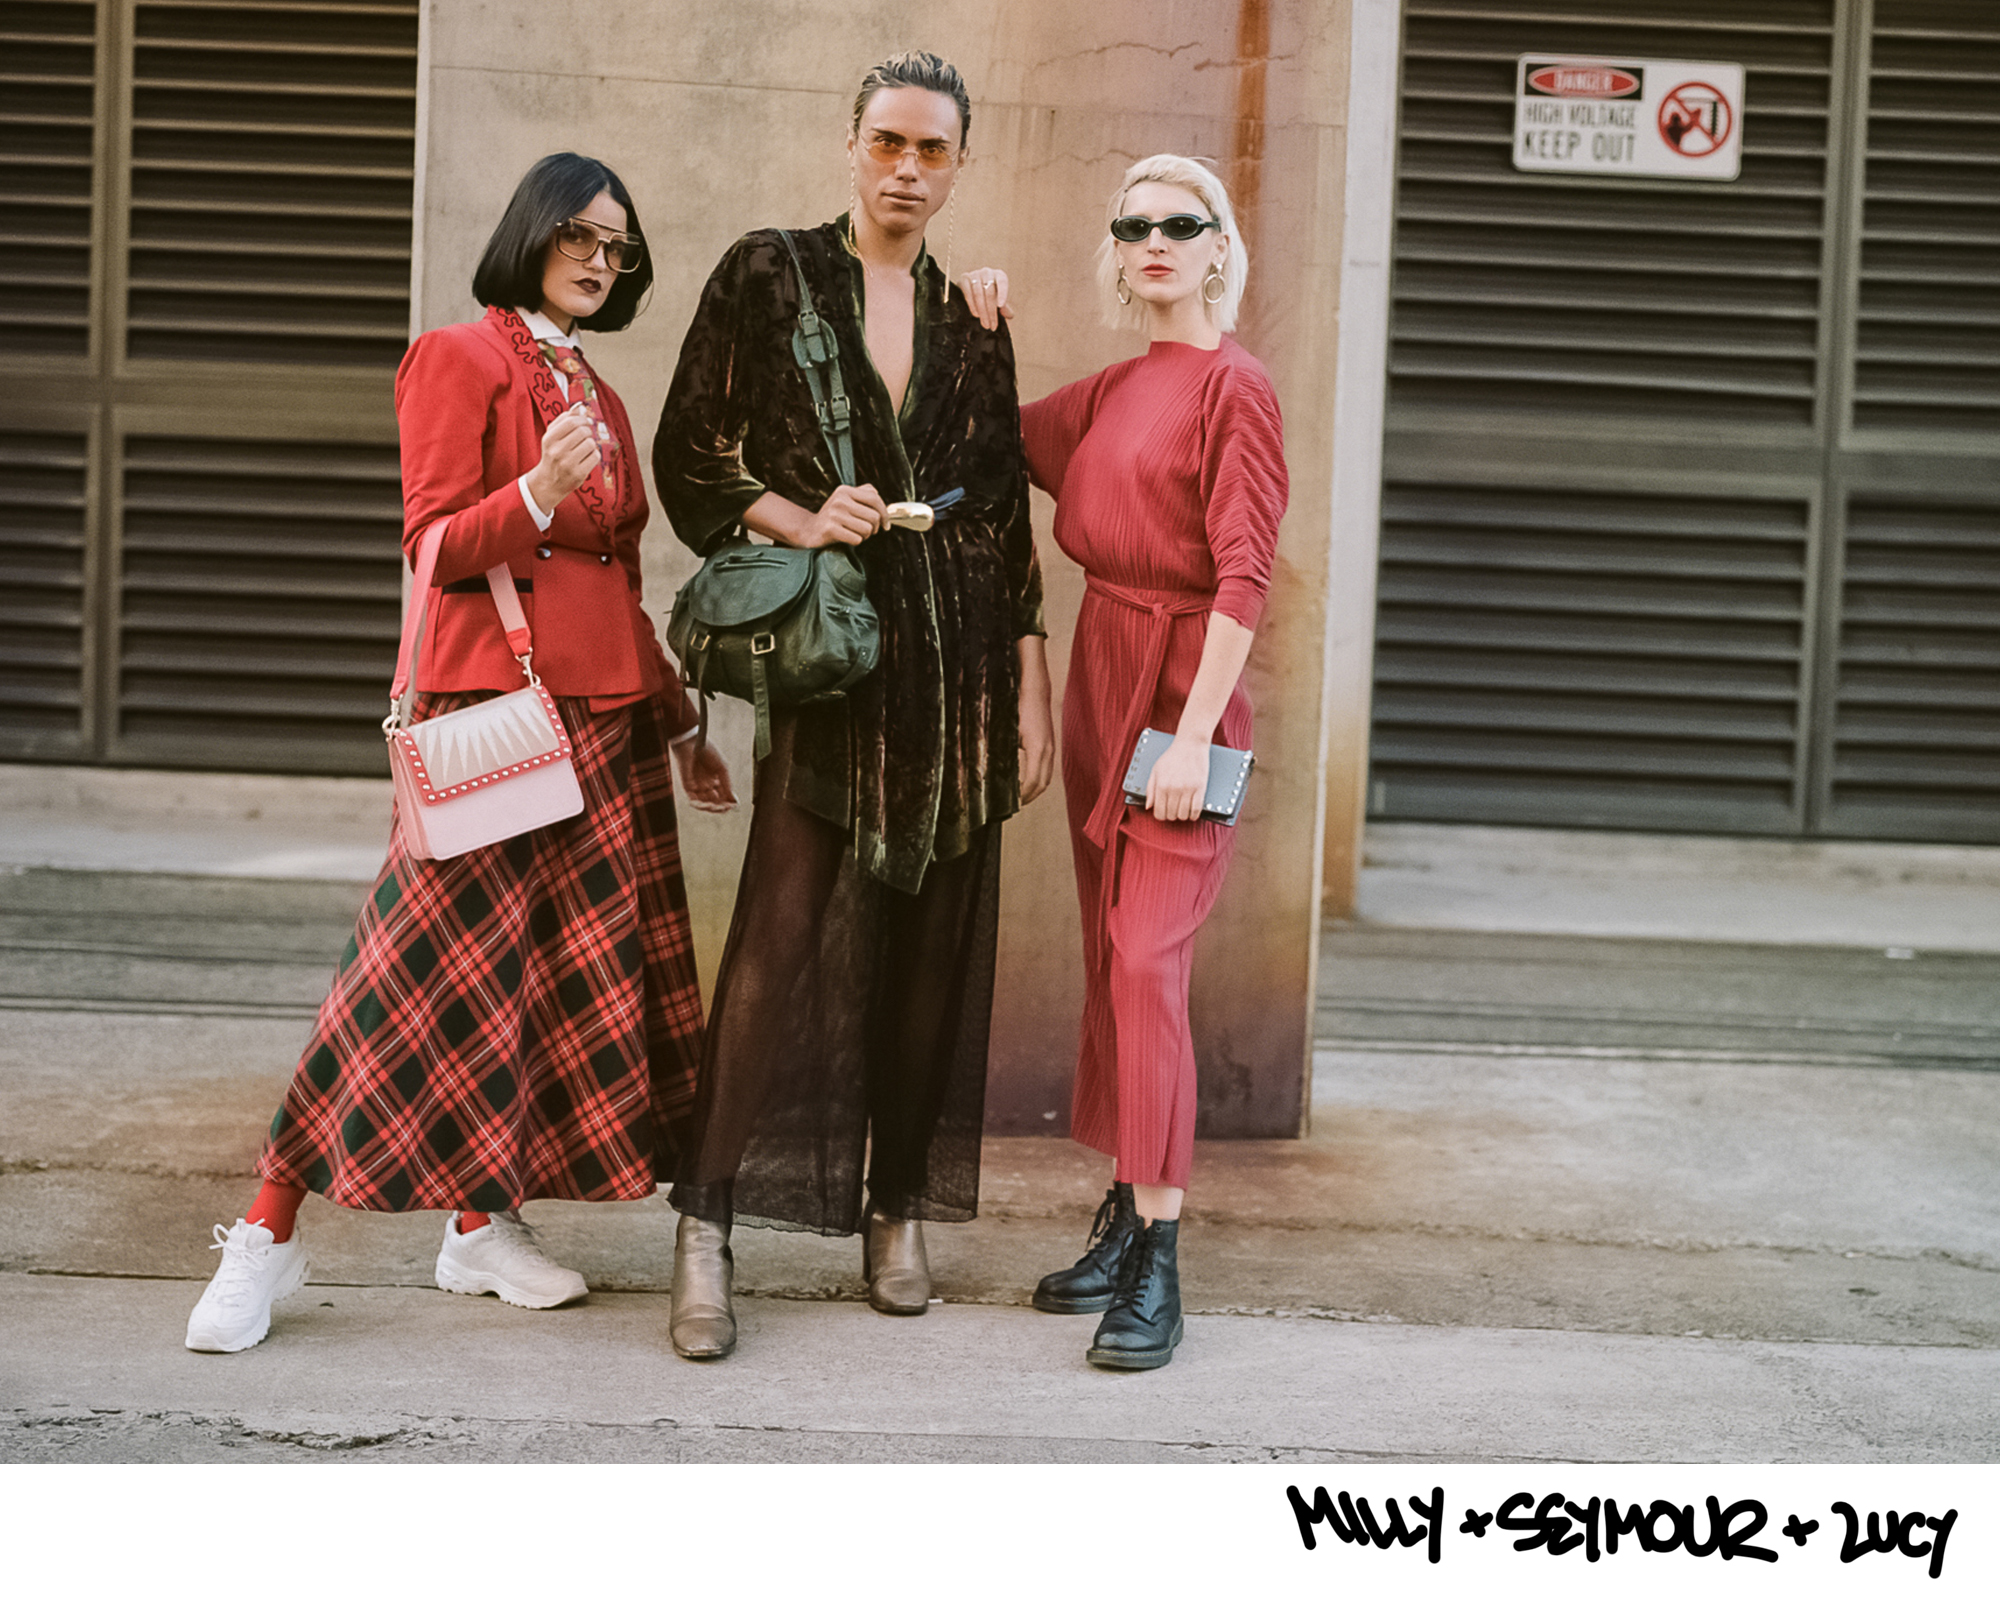 Millie Sykes, Seymour Tancred & Lucy Alcorn MBFWA